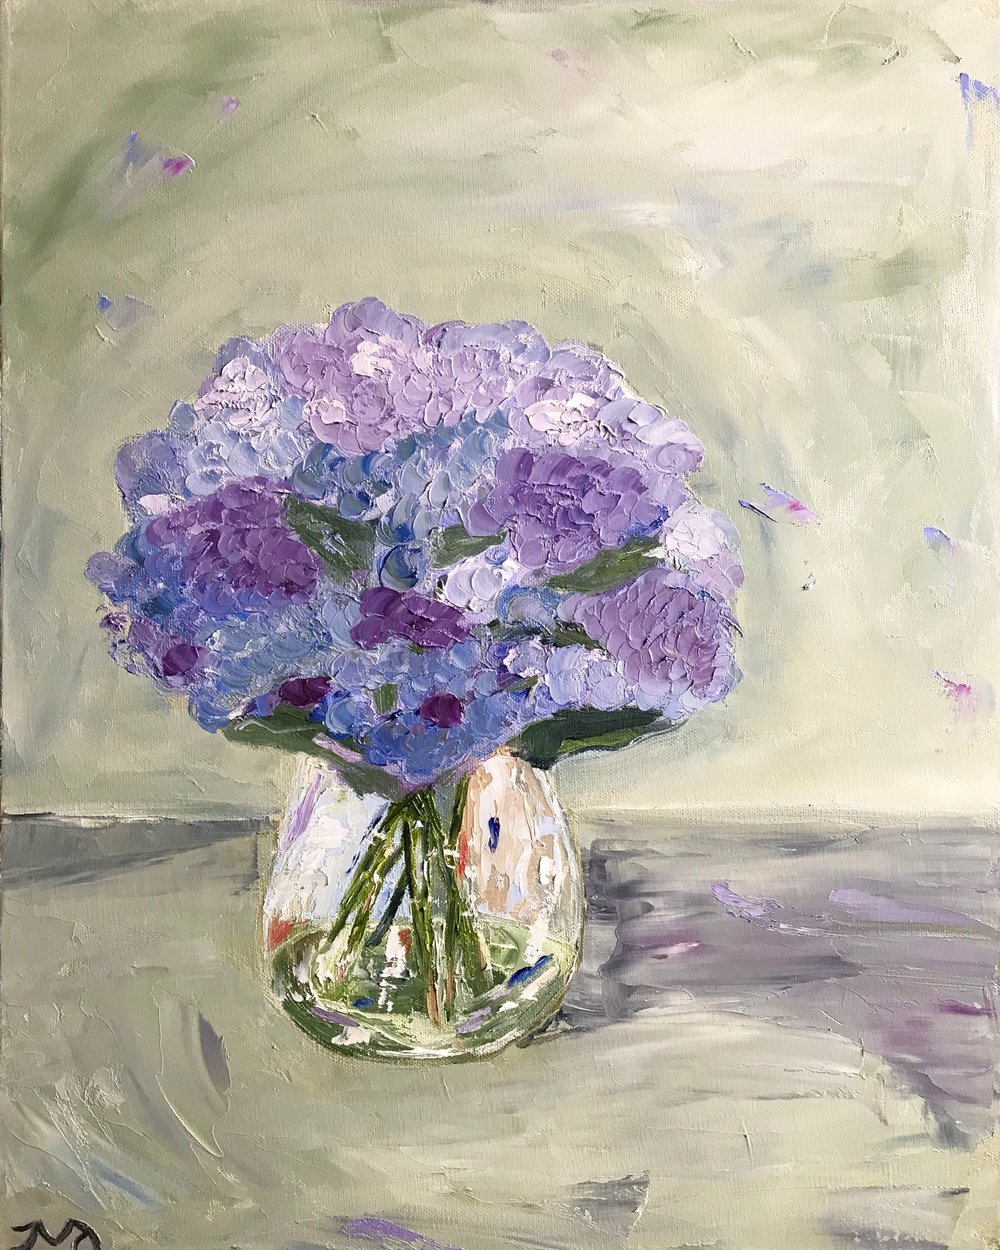 Hydrangeas | oil on canvas | 16 x 20 x 1.5 inches | Available in store